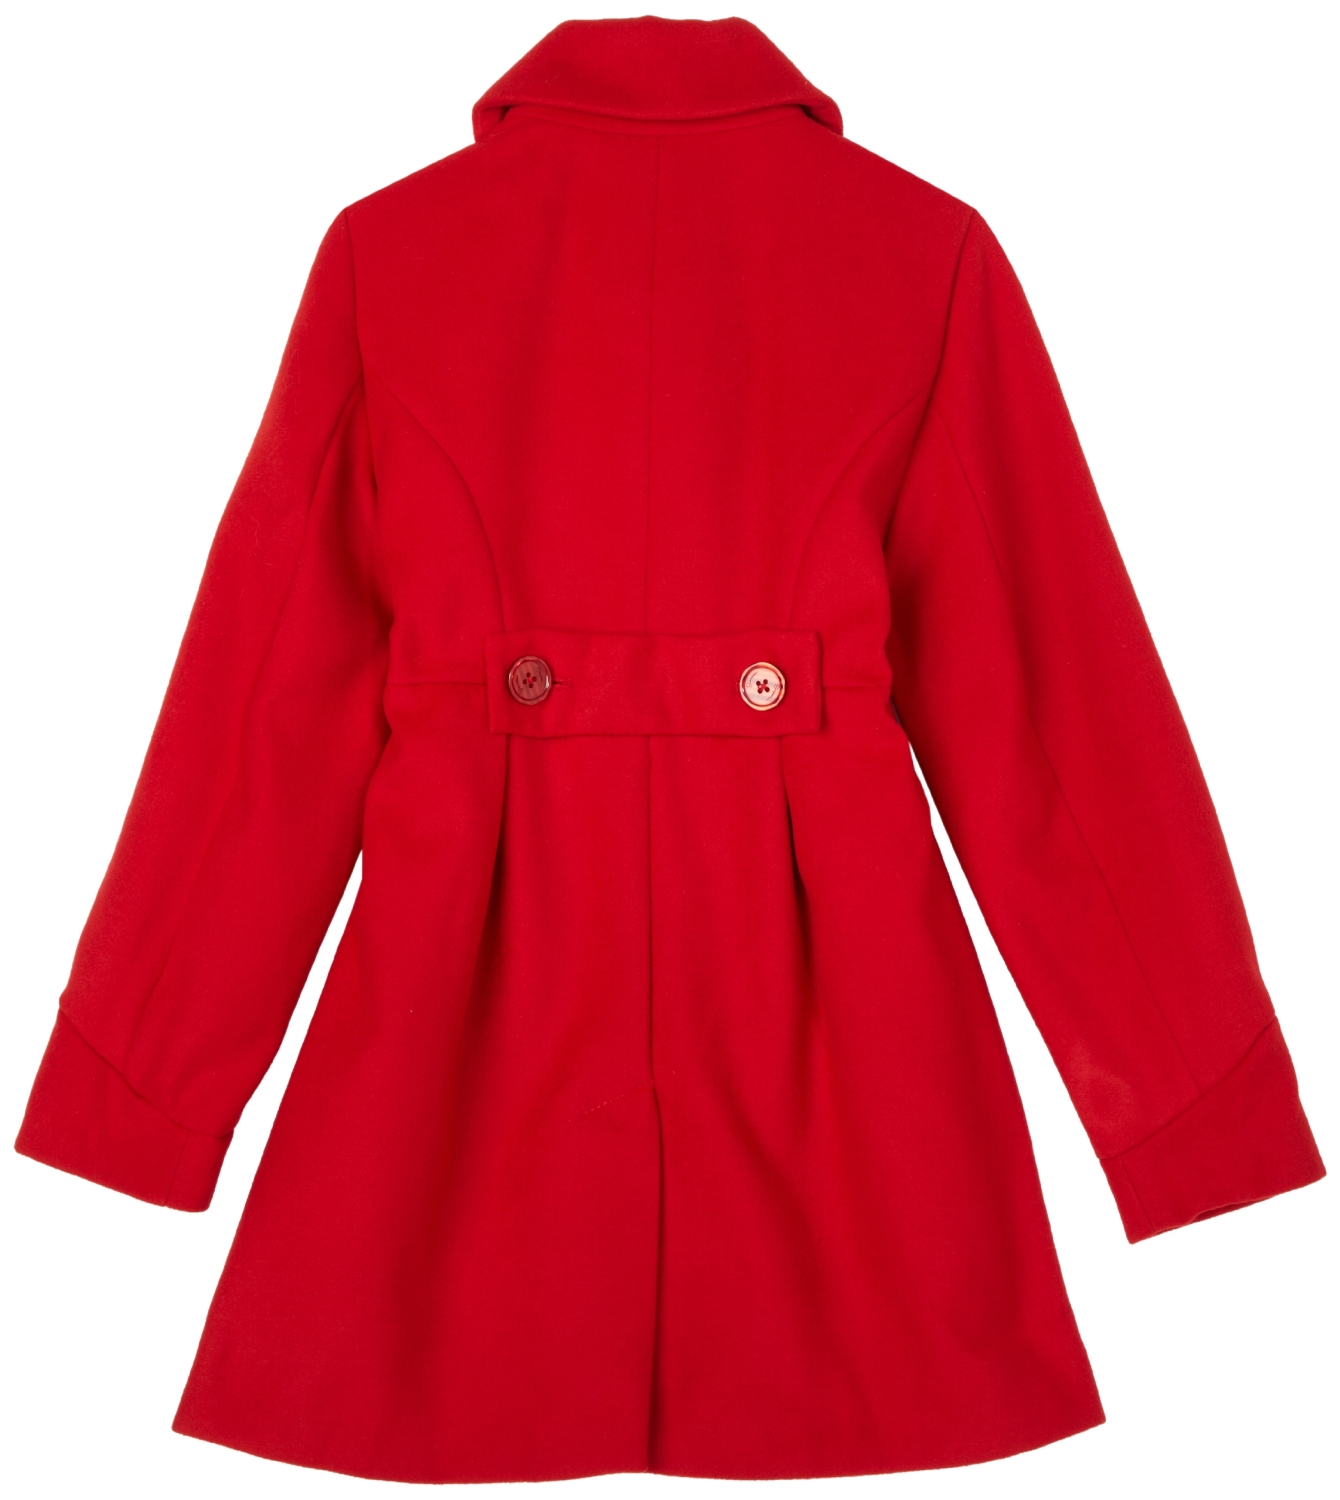 Kids Winter Coats Store: Kids Winter Coats By Jessica ...